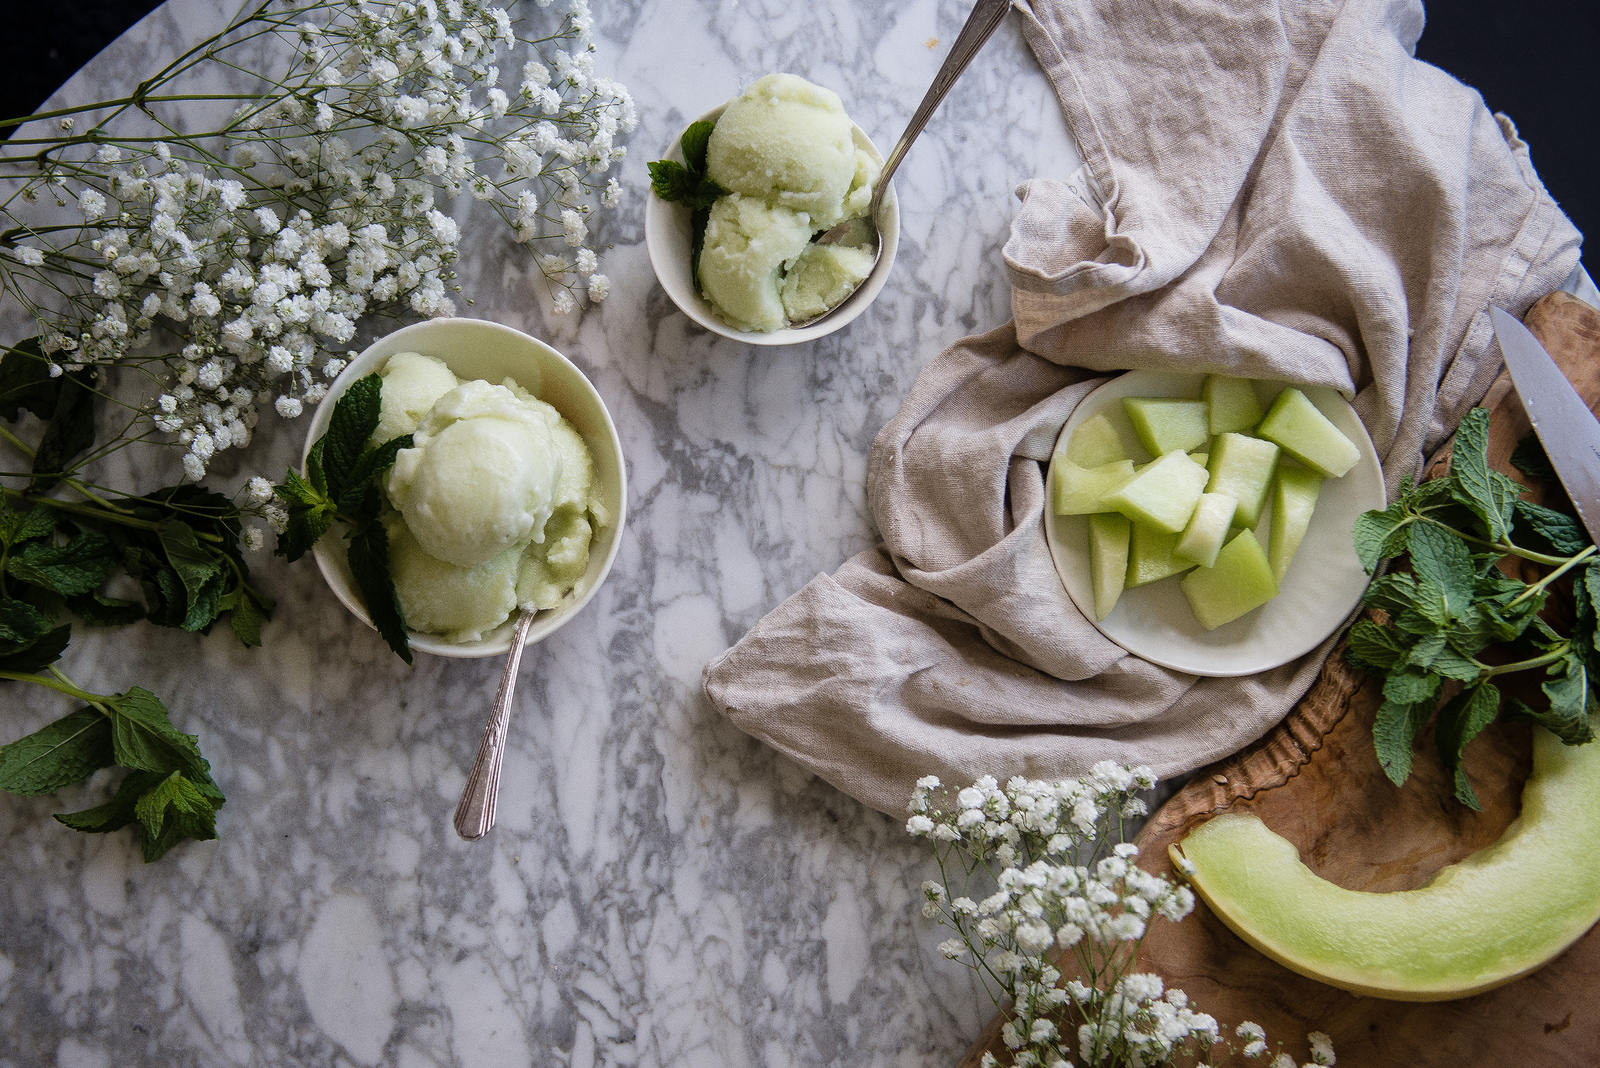 An overhead shot of green melon ice cream in bowls next to sliced melons.